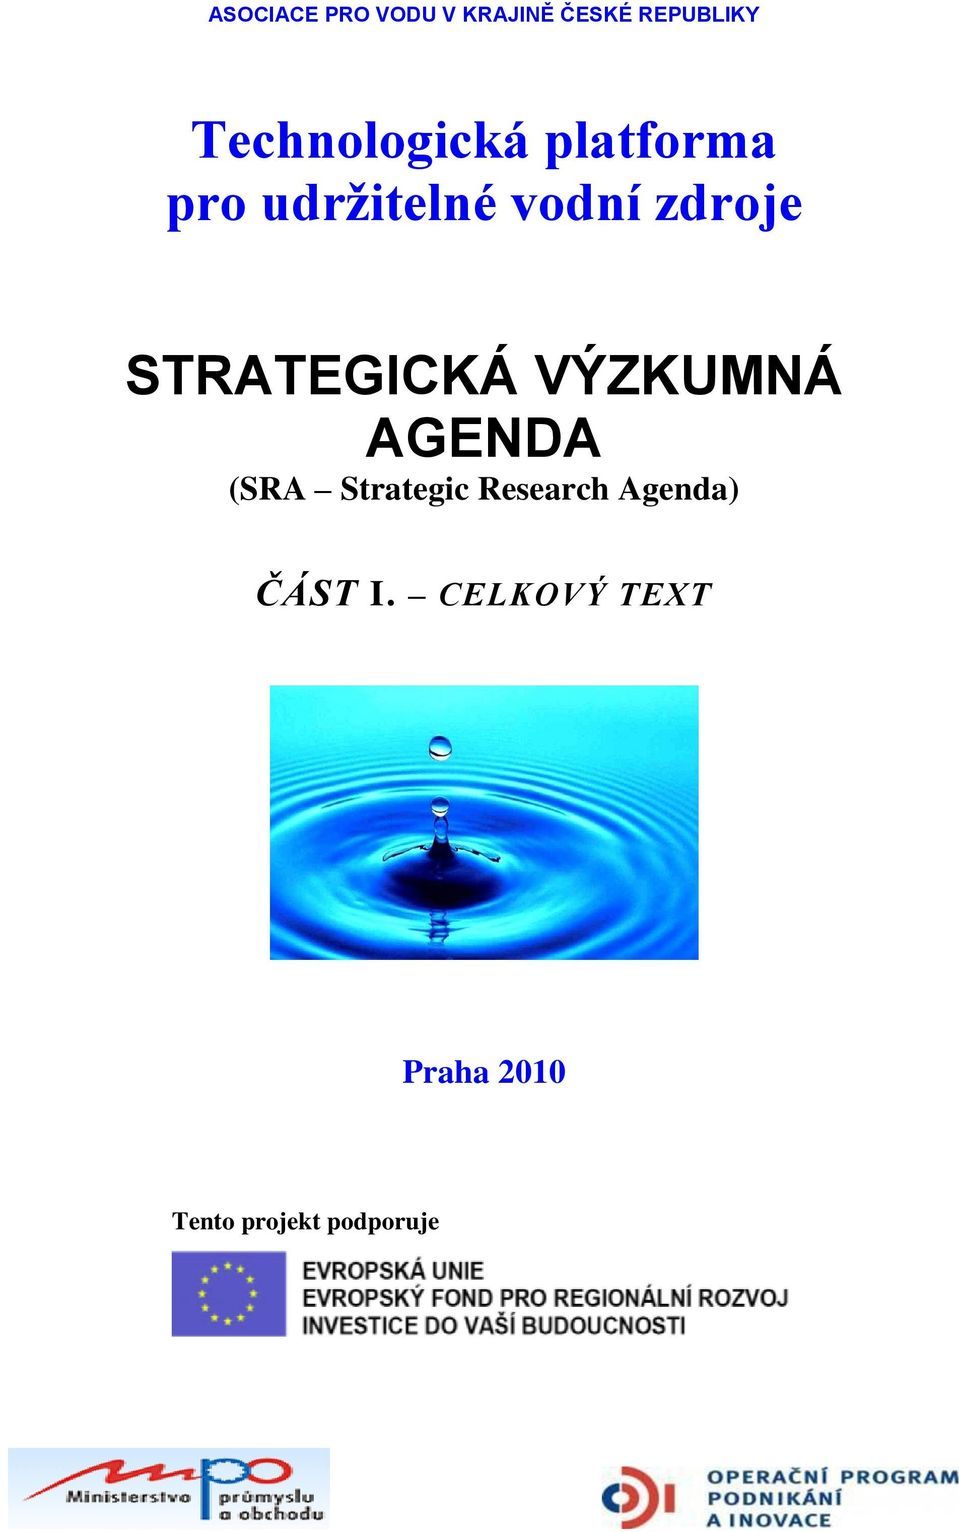 STRATEGICKÁ VÝZKUMNÁ AGENDA (SRA Strategic Research